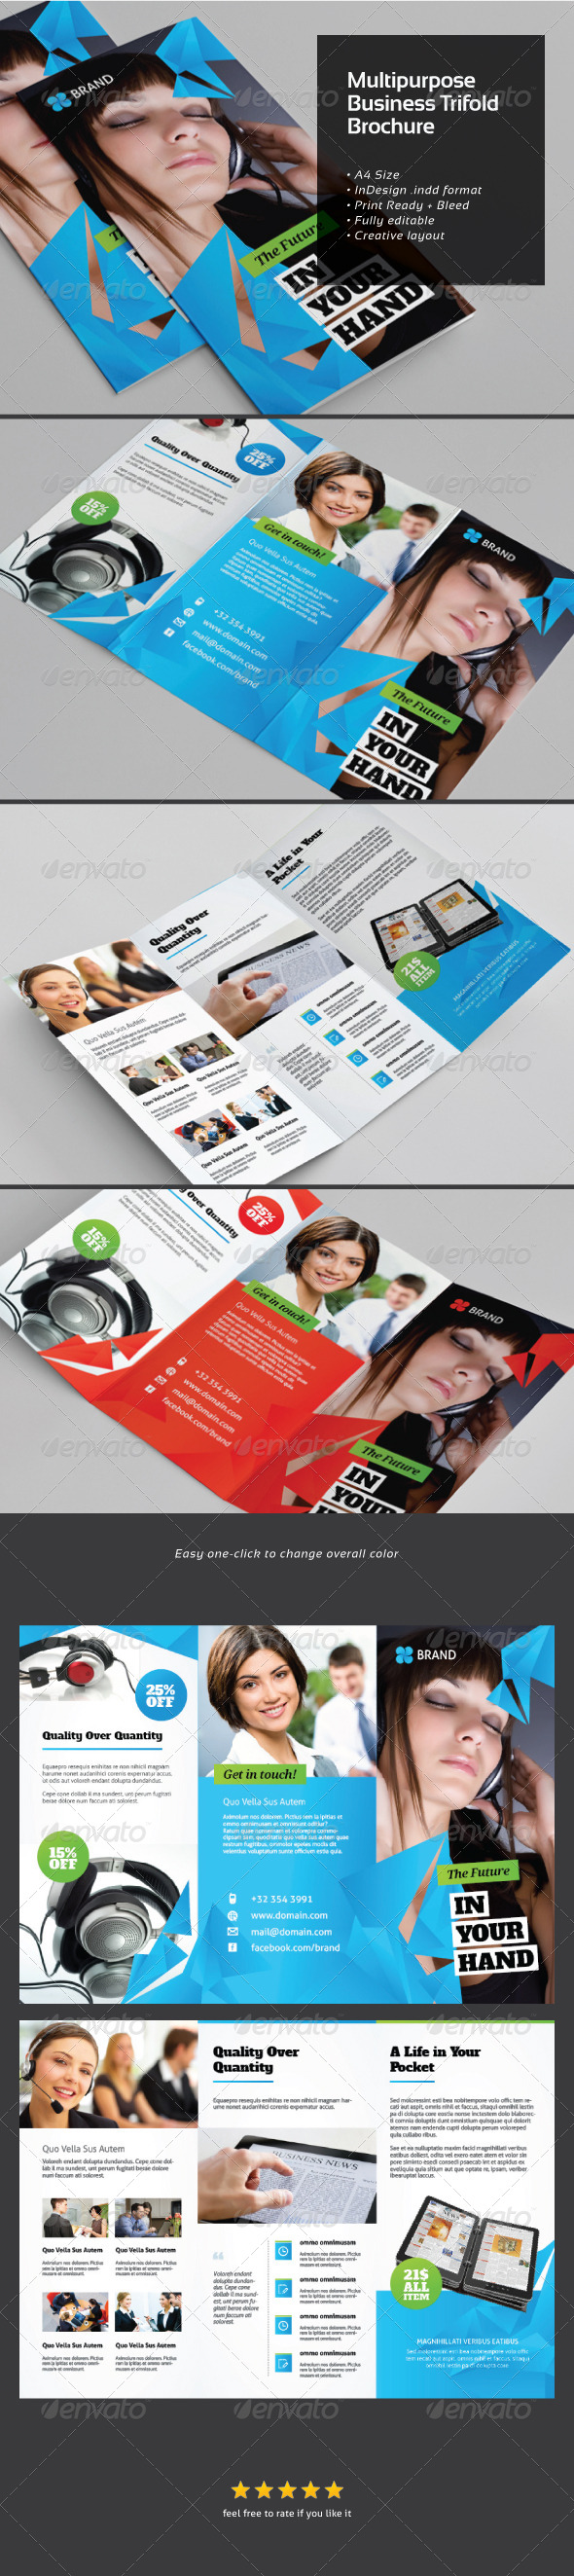 Multi-purposes Business Trifold Brochure - Brochures Print Templates